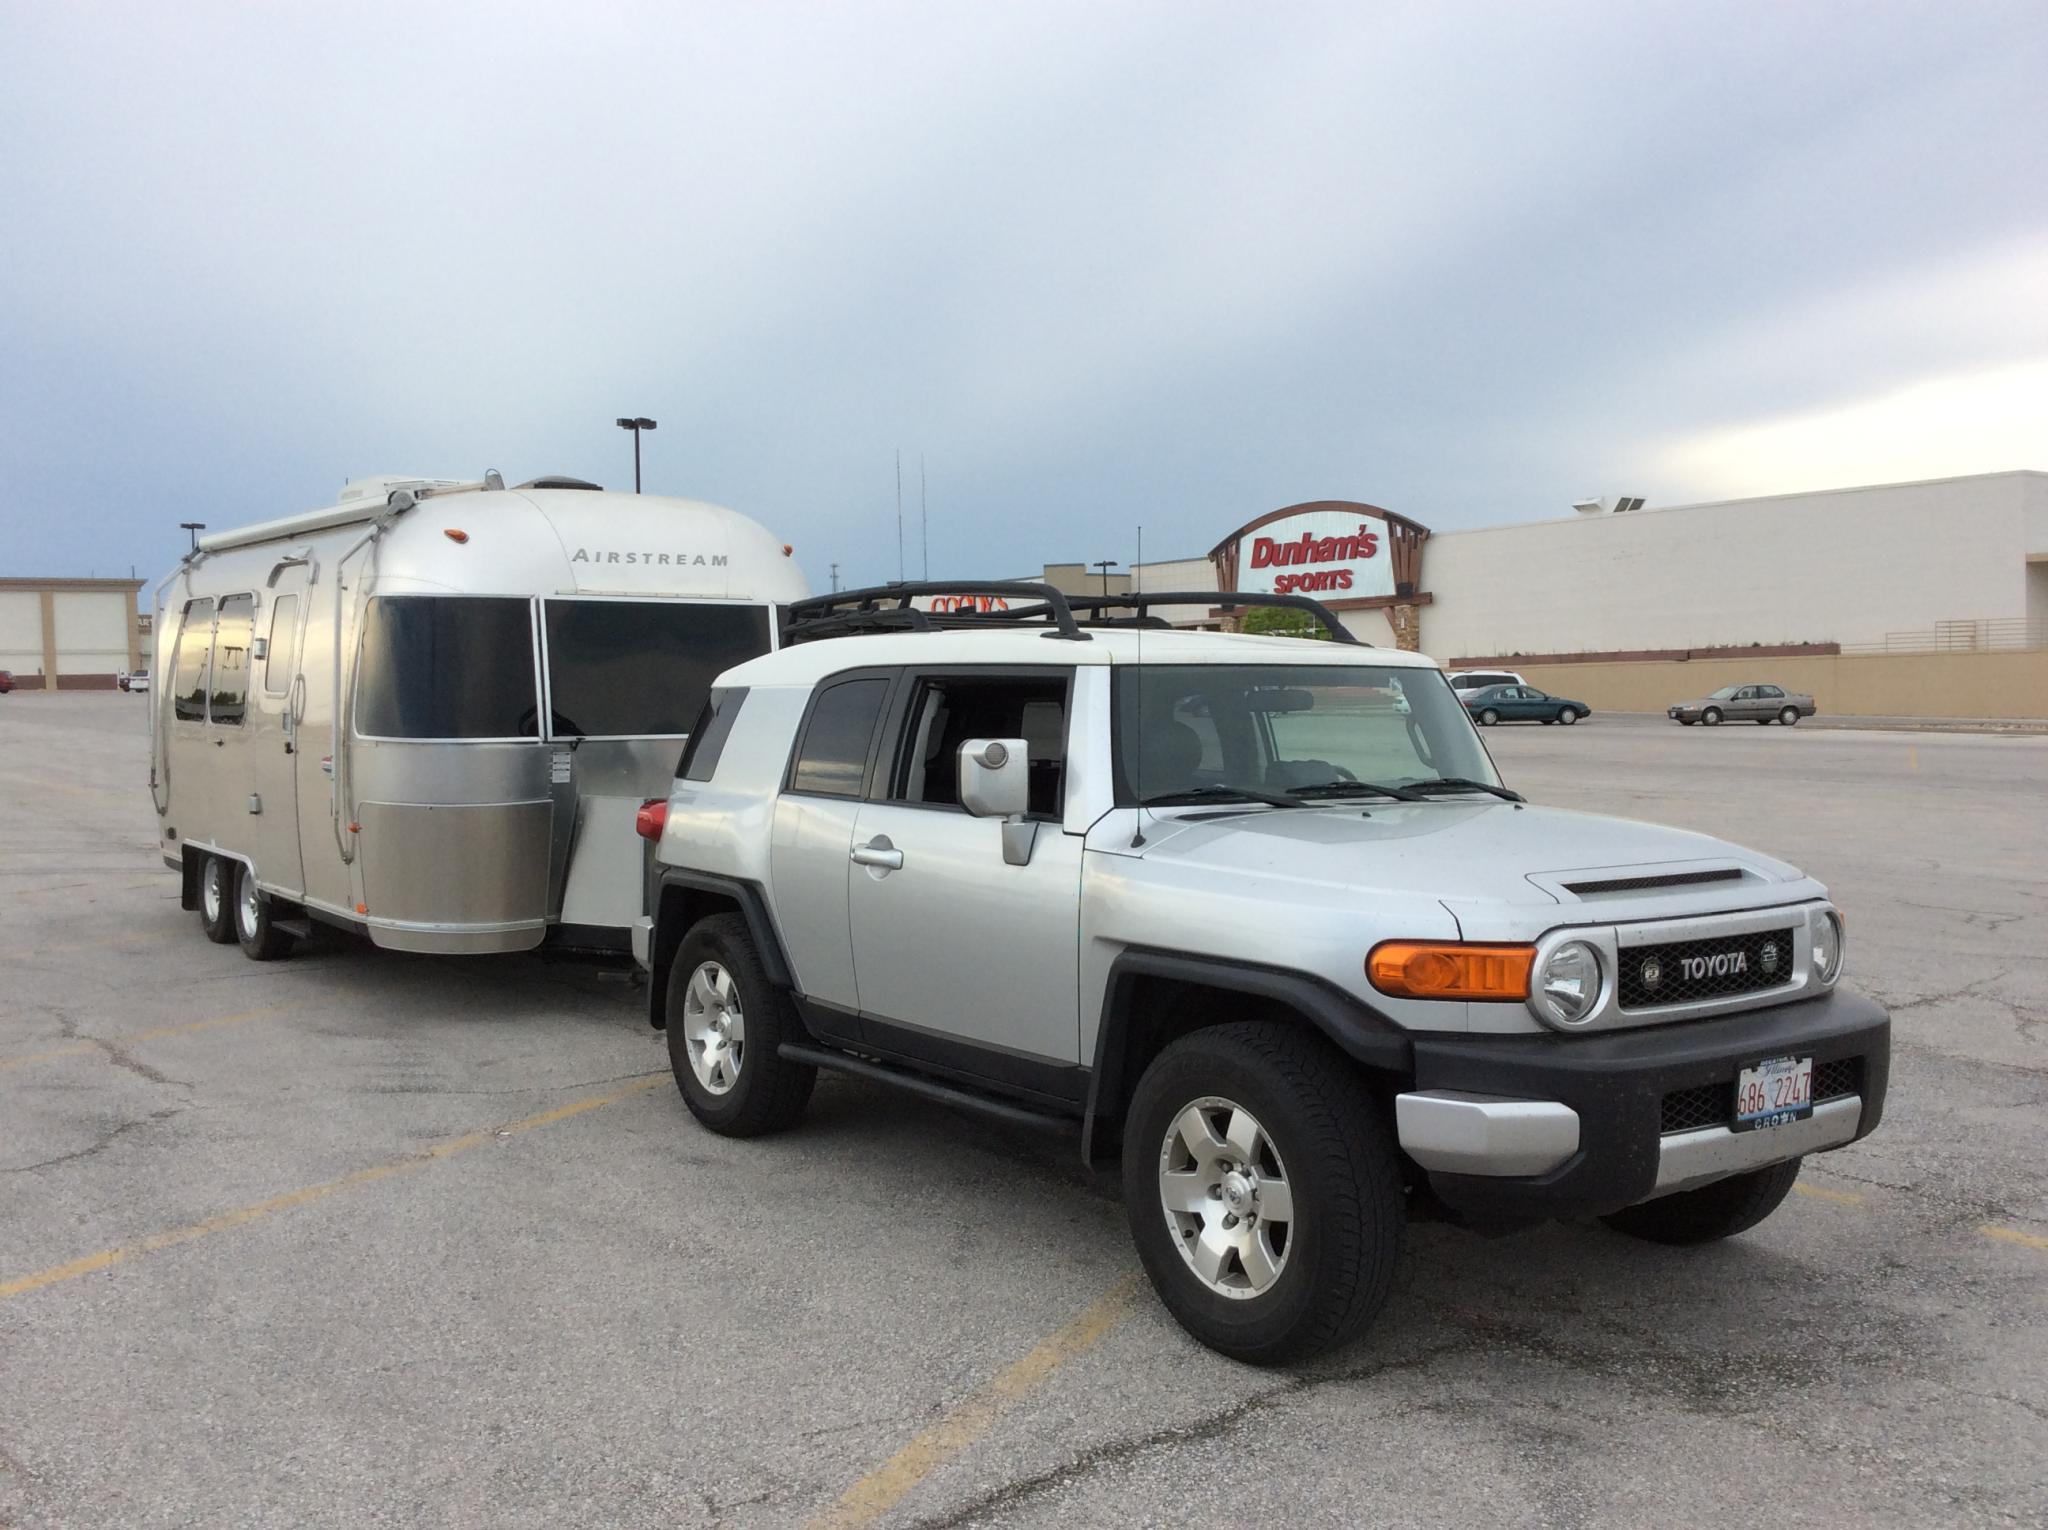 Toyota Tundra Towing Capacity >> towing capacity - Page 2 - Toyota FJ Cruiser Forum